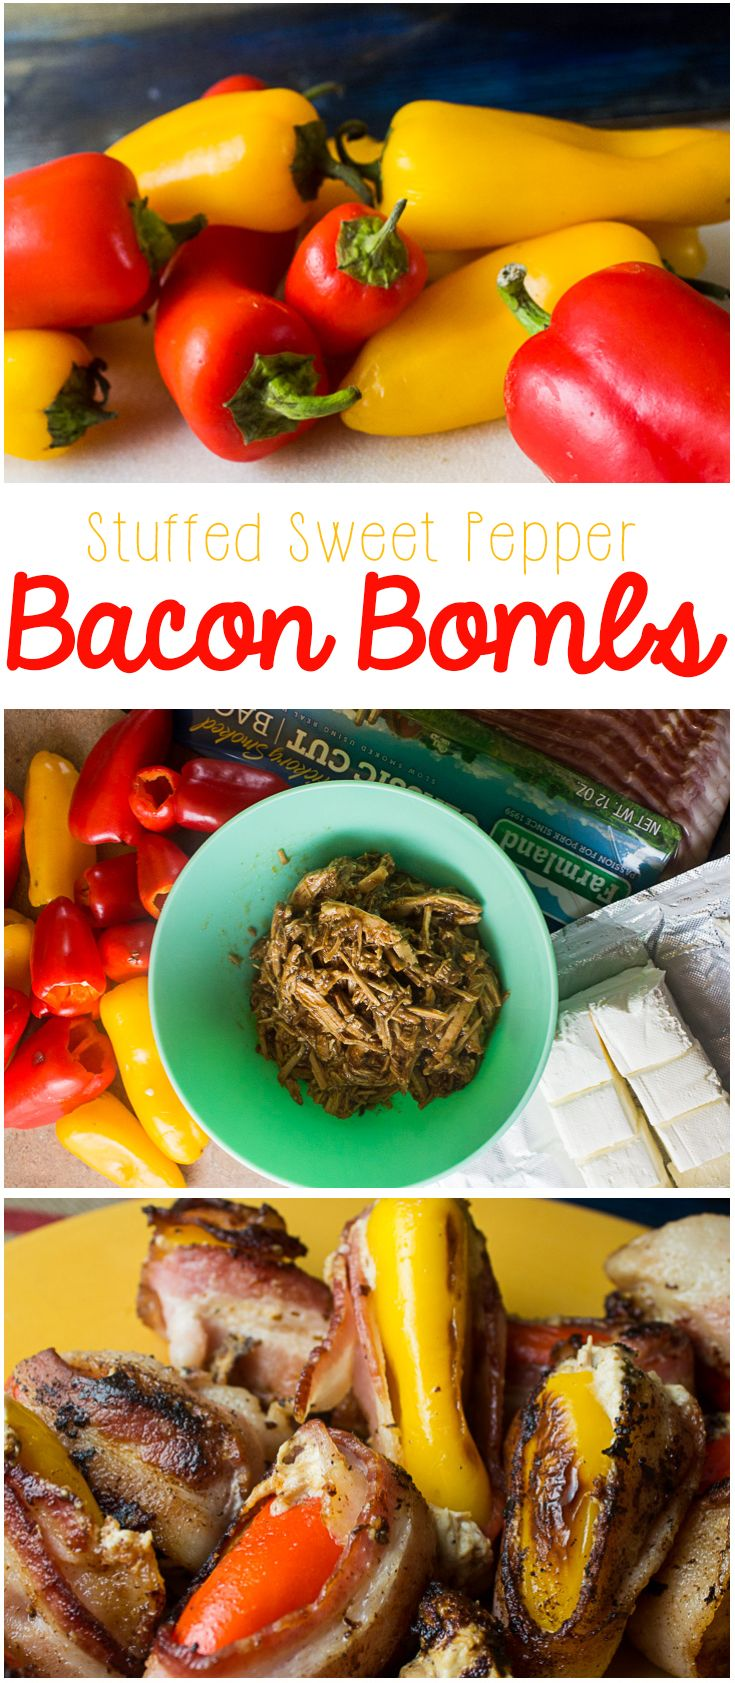 72 Best Traeger Recipes Images On Pinterest Cooking